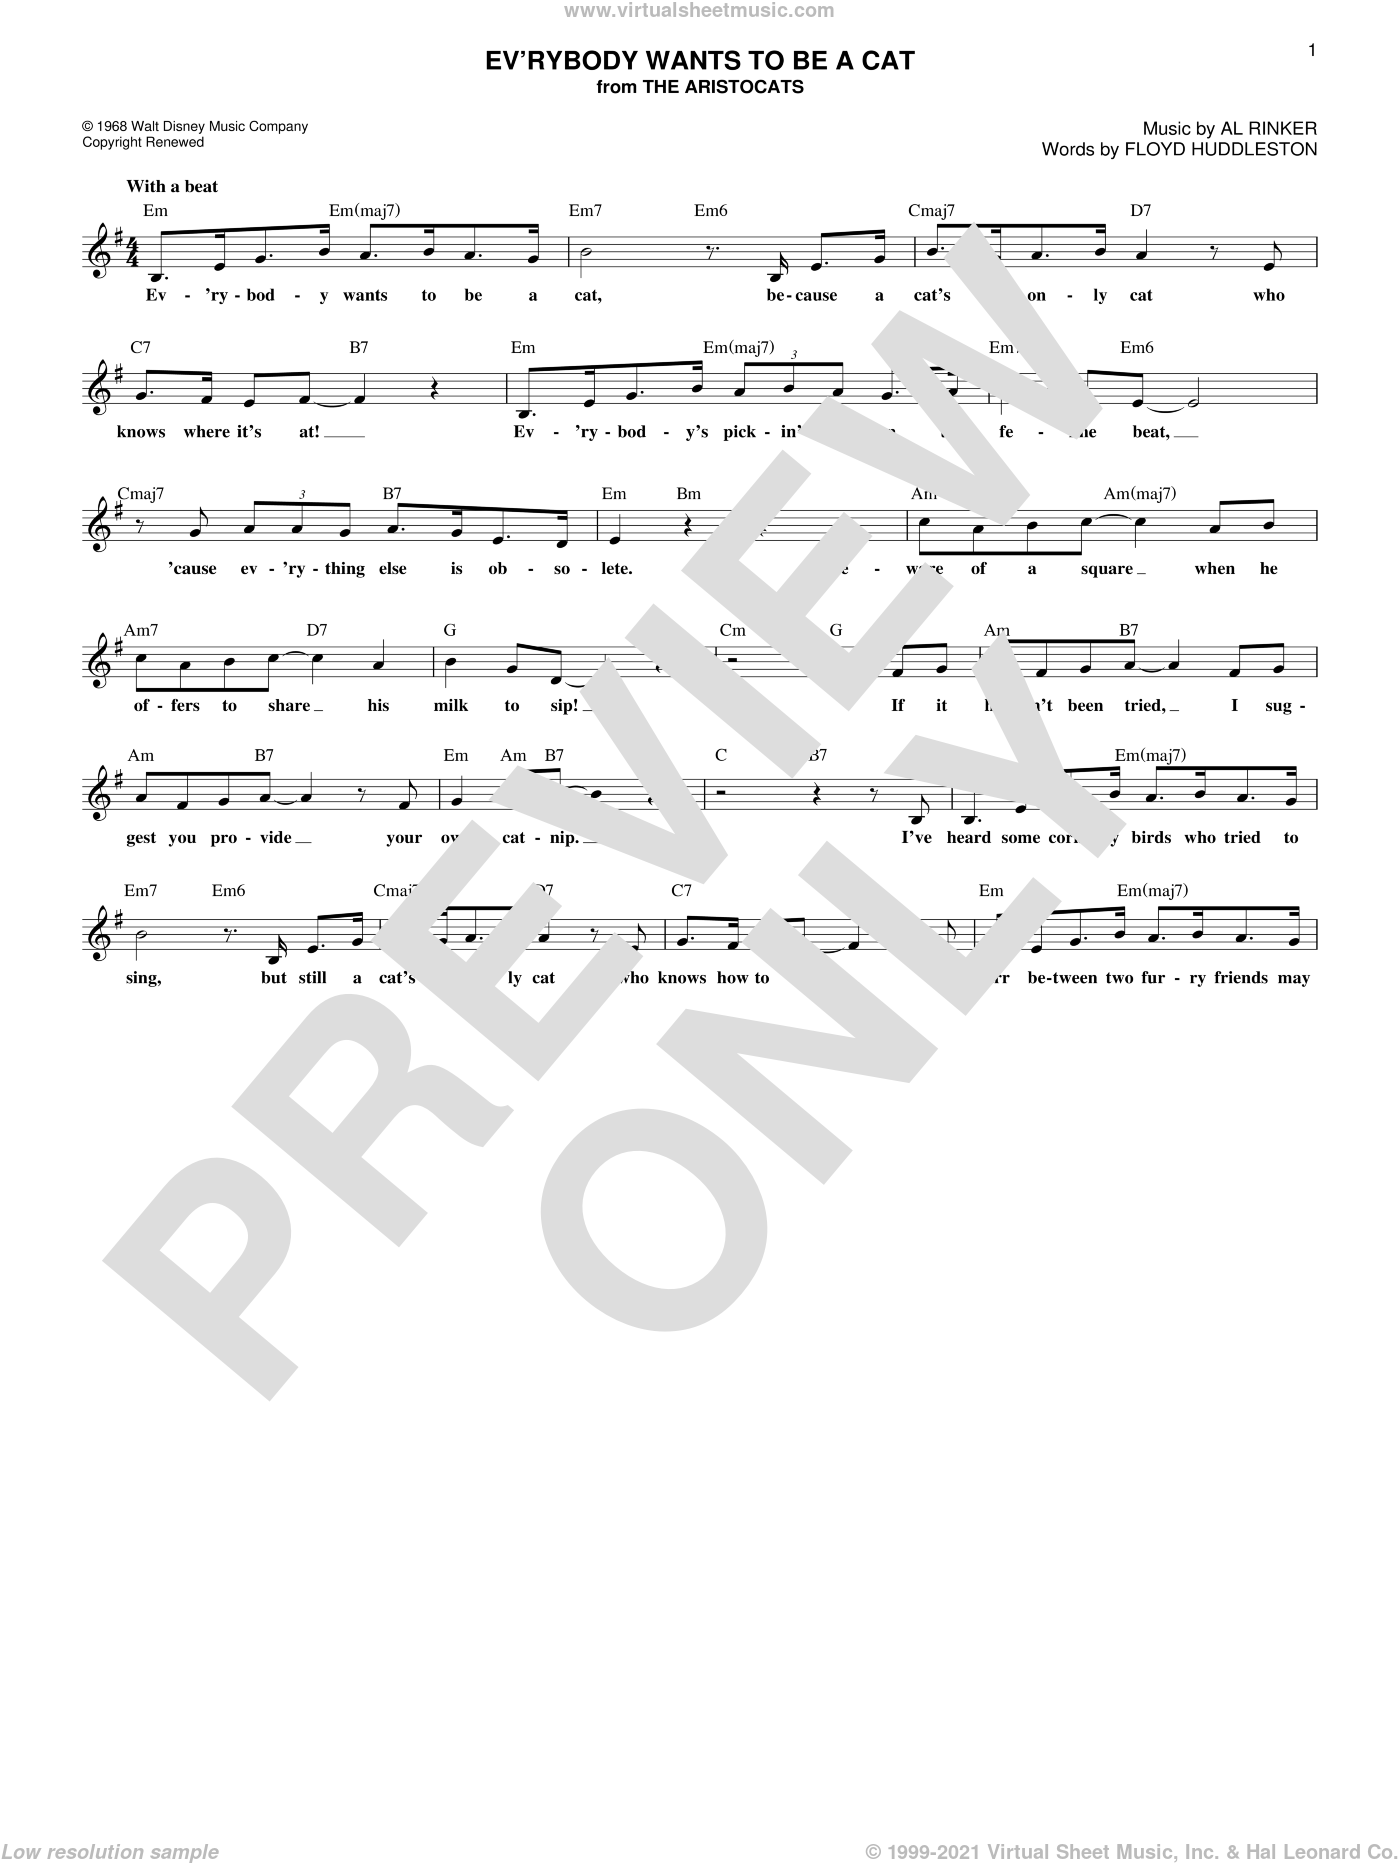 Ev'rybody Wants To Be A Cat sheet music for voice and other instruments (fake book) by Al Rinker and Floyd Huddleston. Score Image Preview.